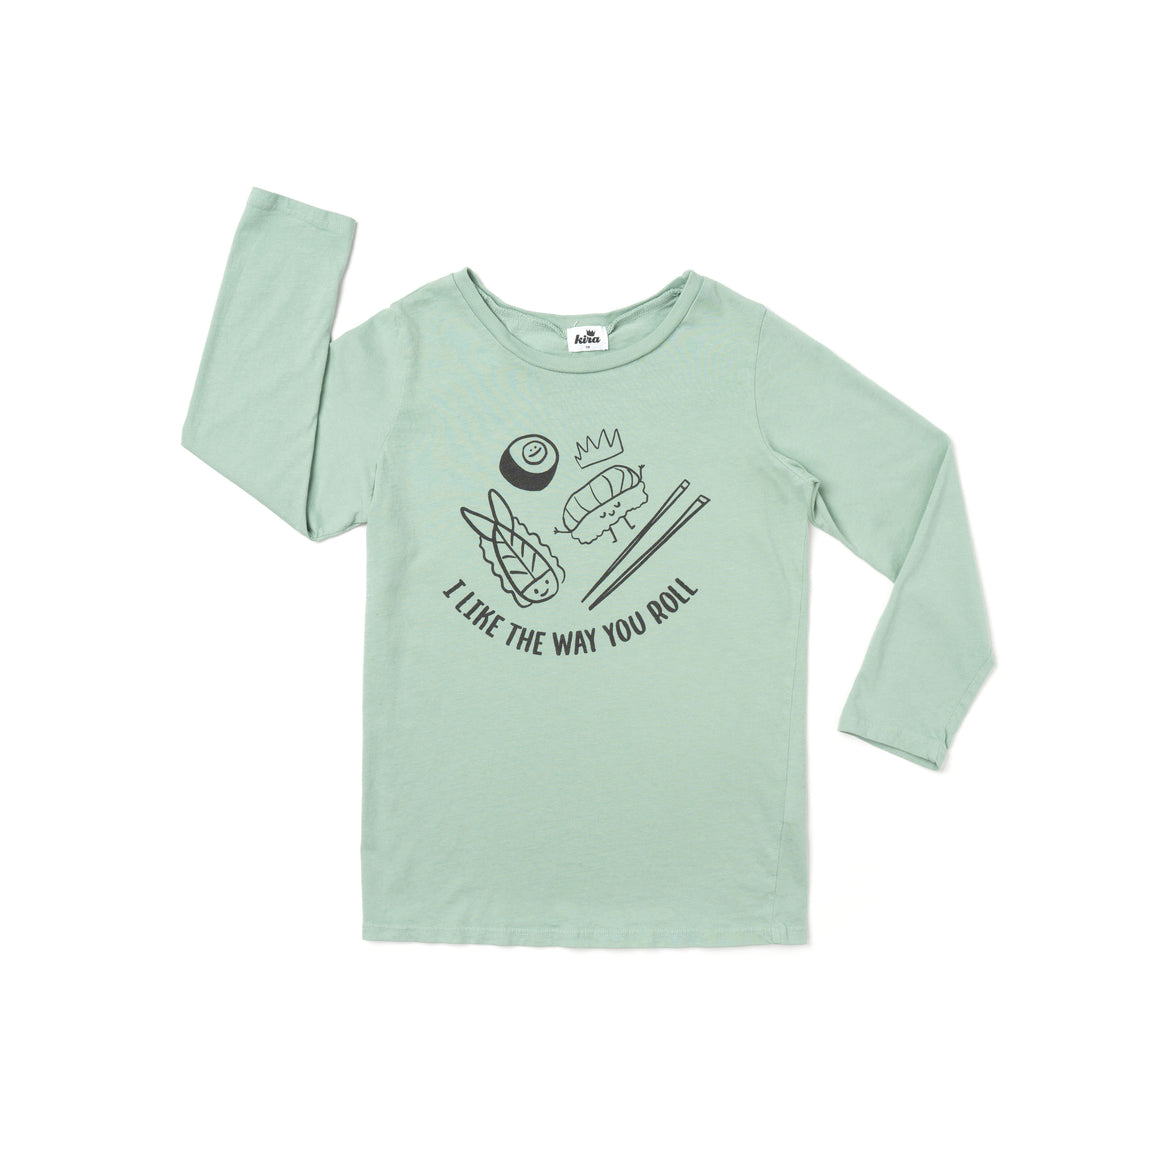 I Like the Way You Roll Graphic T-shirt, Long Sleeve, Celadon